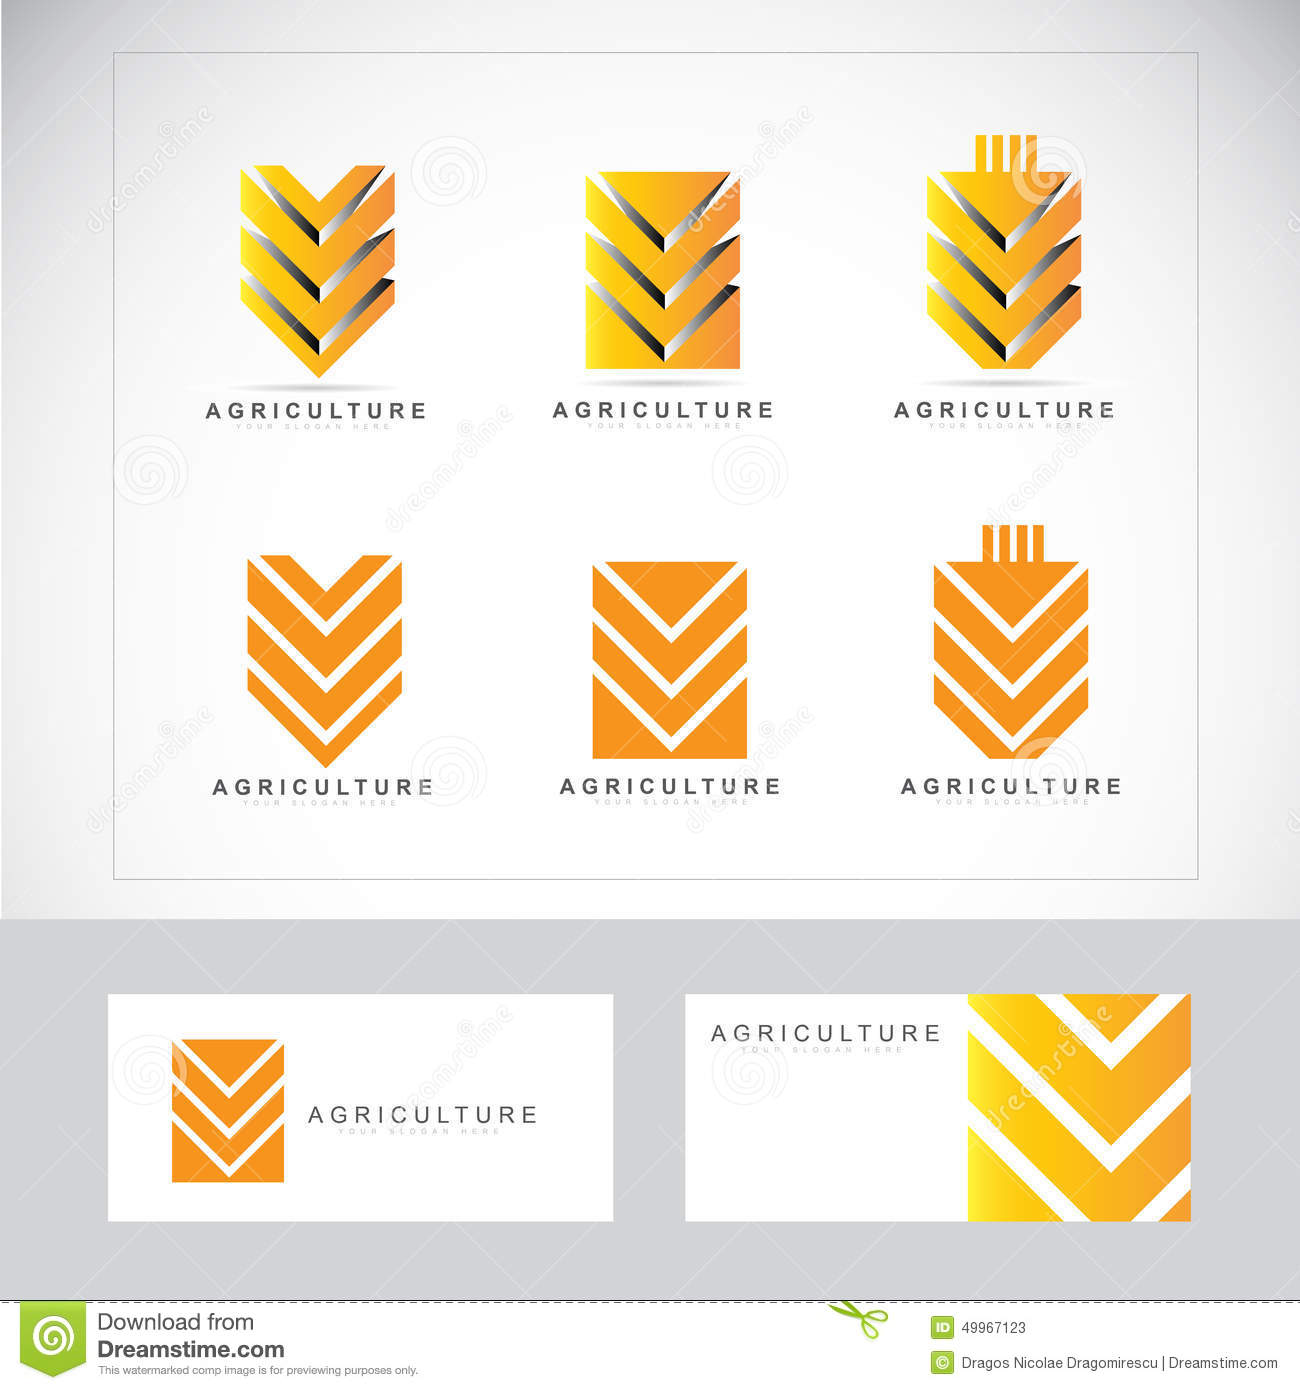 Agriculture logo with stylized wheat icon with business card template.